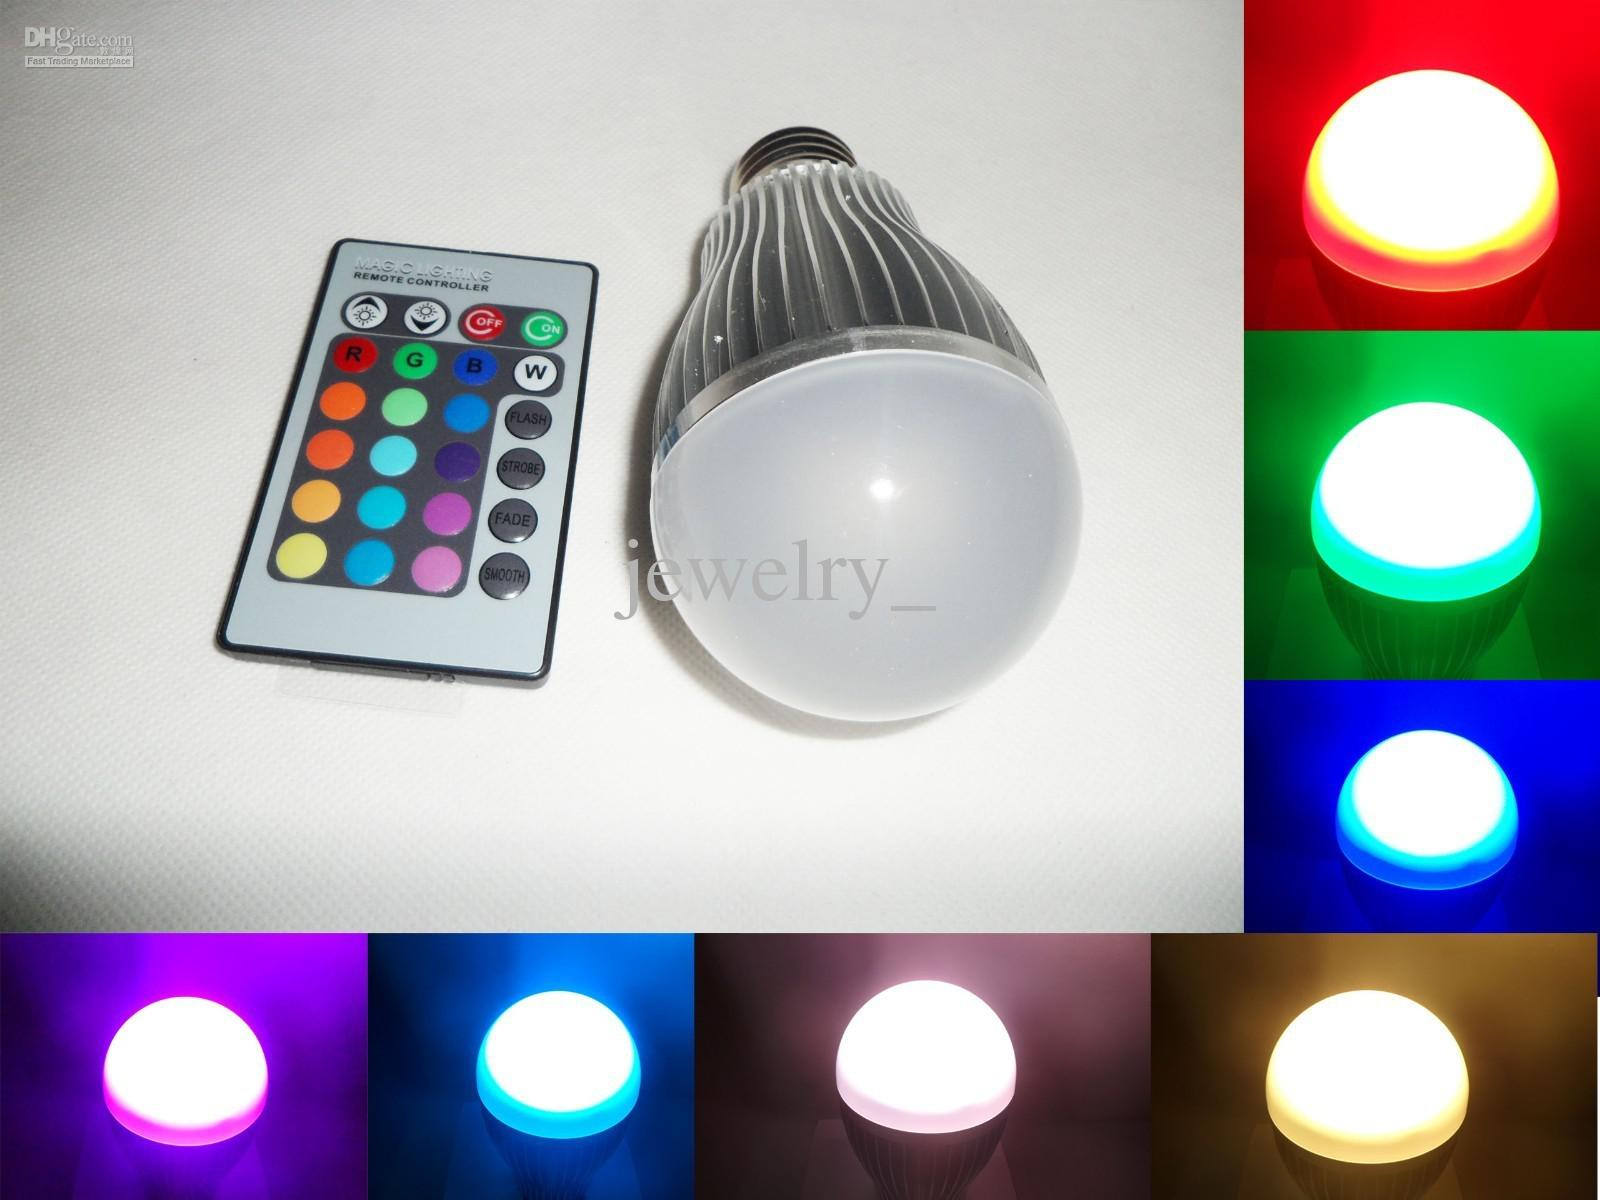 Color Changing Led Light Bulbs: 10w Change Rgb Led Light Bulb Lamp Ac 85 265v+ 24 Key Ir Remote Control B22 Led  Bulbs Led Bulbs Review From Jewelry_, $12.1| Dhgate.Com,Lighting